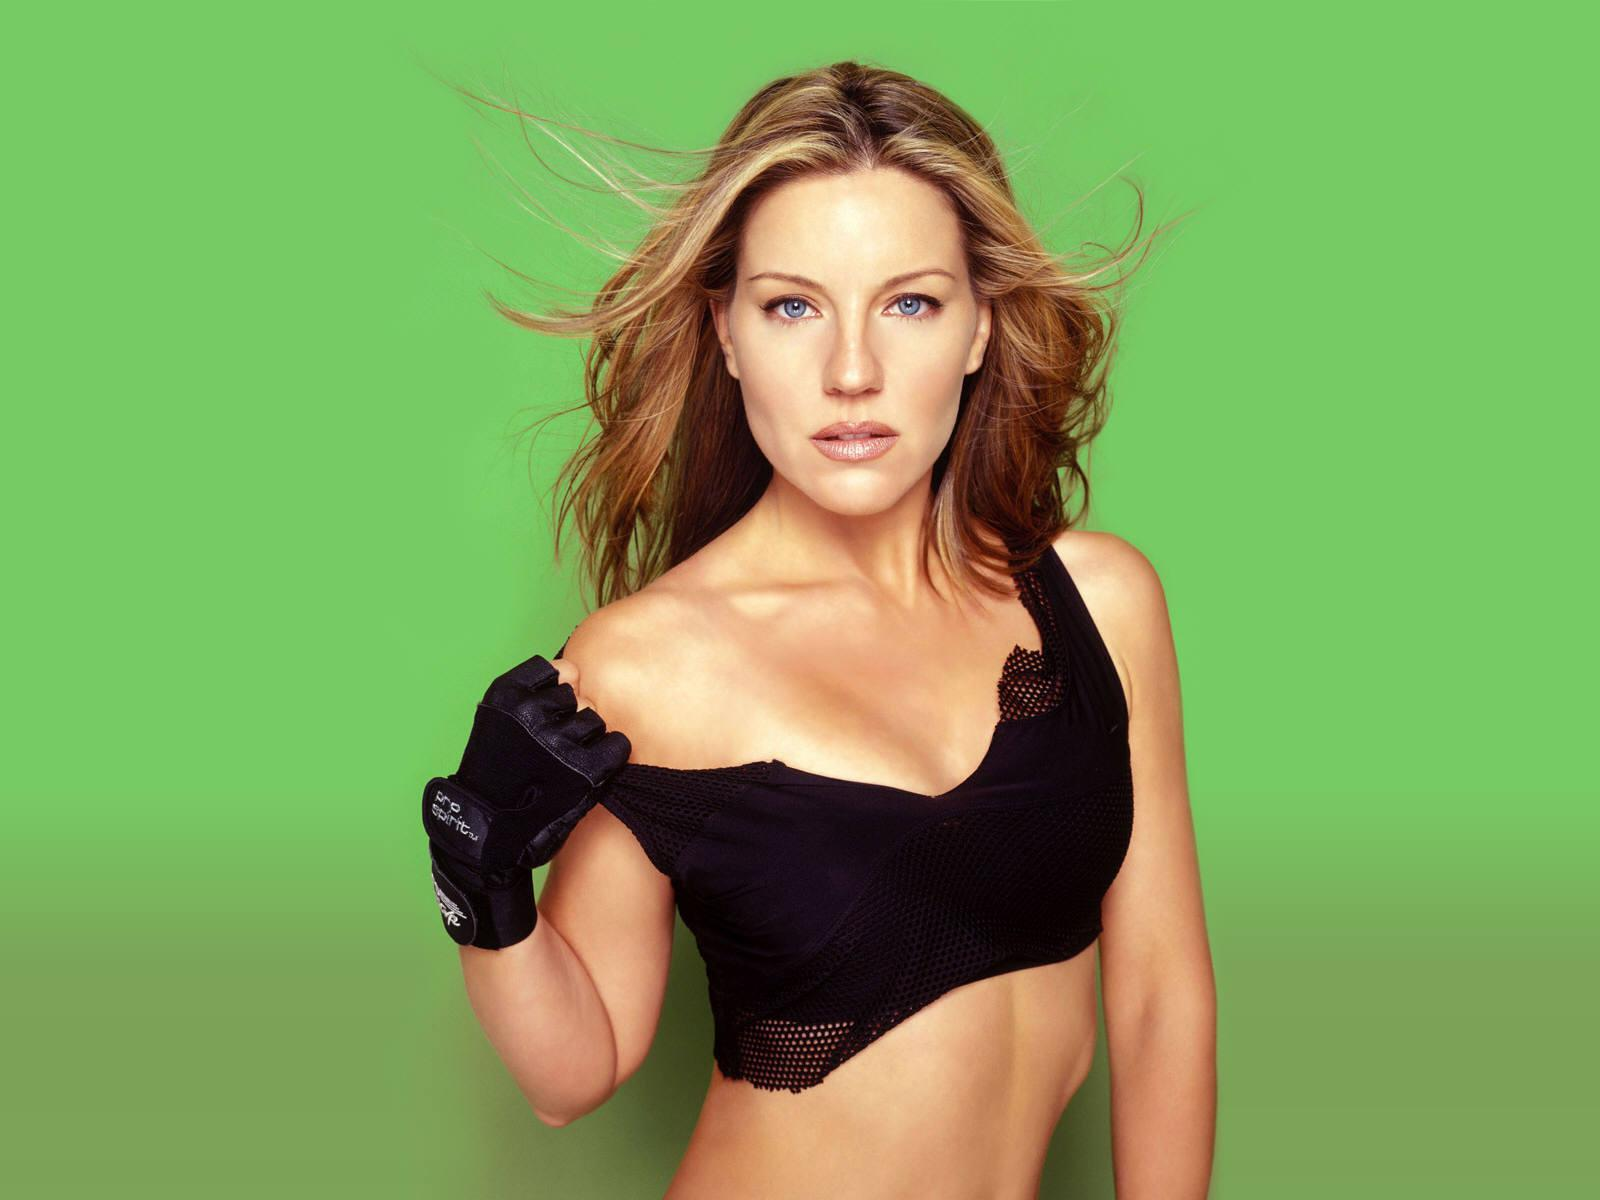 Download Andrea Parker Photoshoot Wallpaper Hd Free Uploaded By